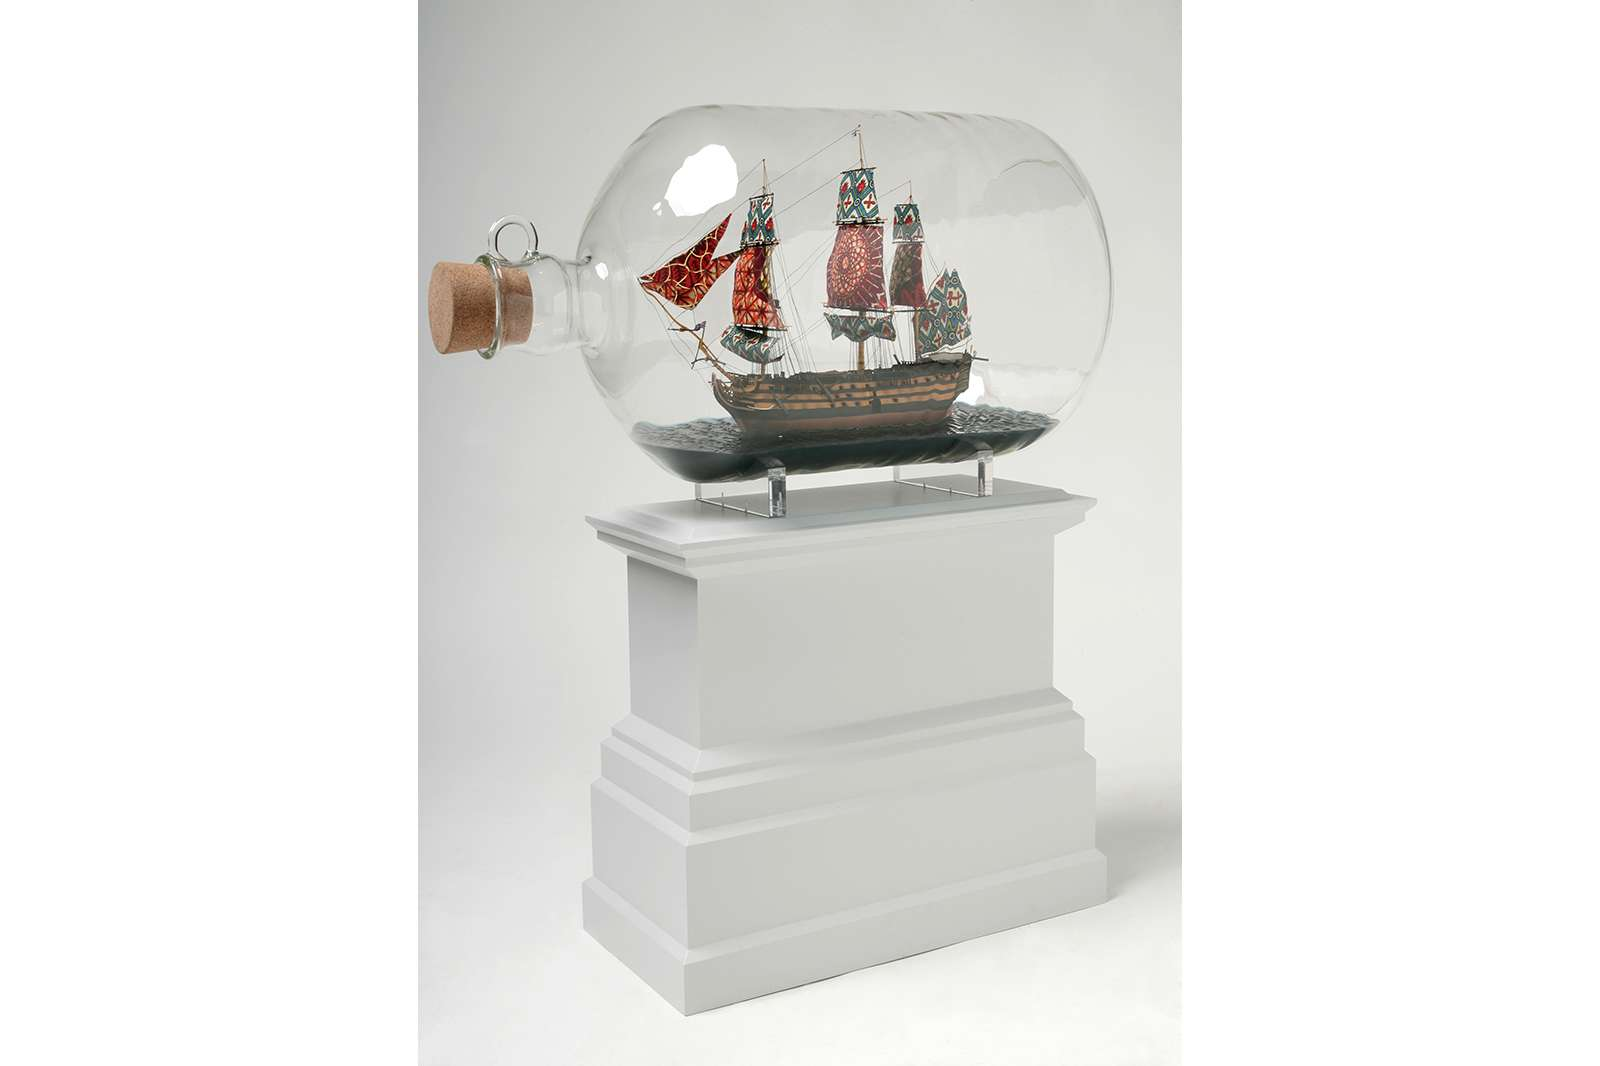 Nelson's Ship in a Bottle (maquette), 2007. Plastic, Dutch wax printed cotton textile, cork, acrylic and glass bottle. © Yinka Shonibare CBE. Courtesy James Cohan, New York.